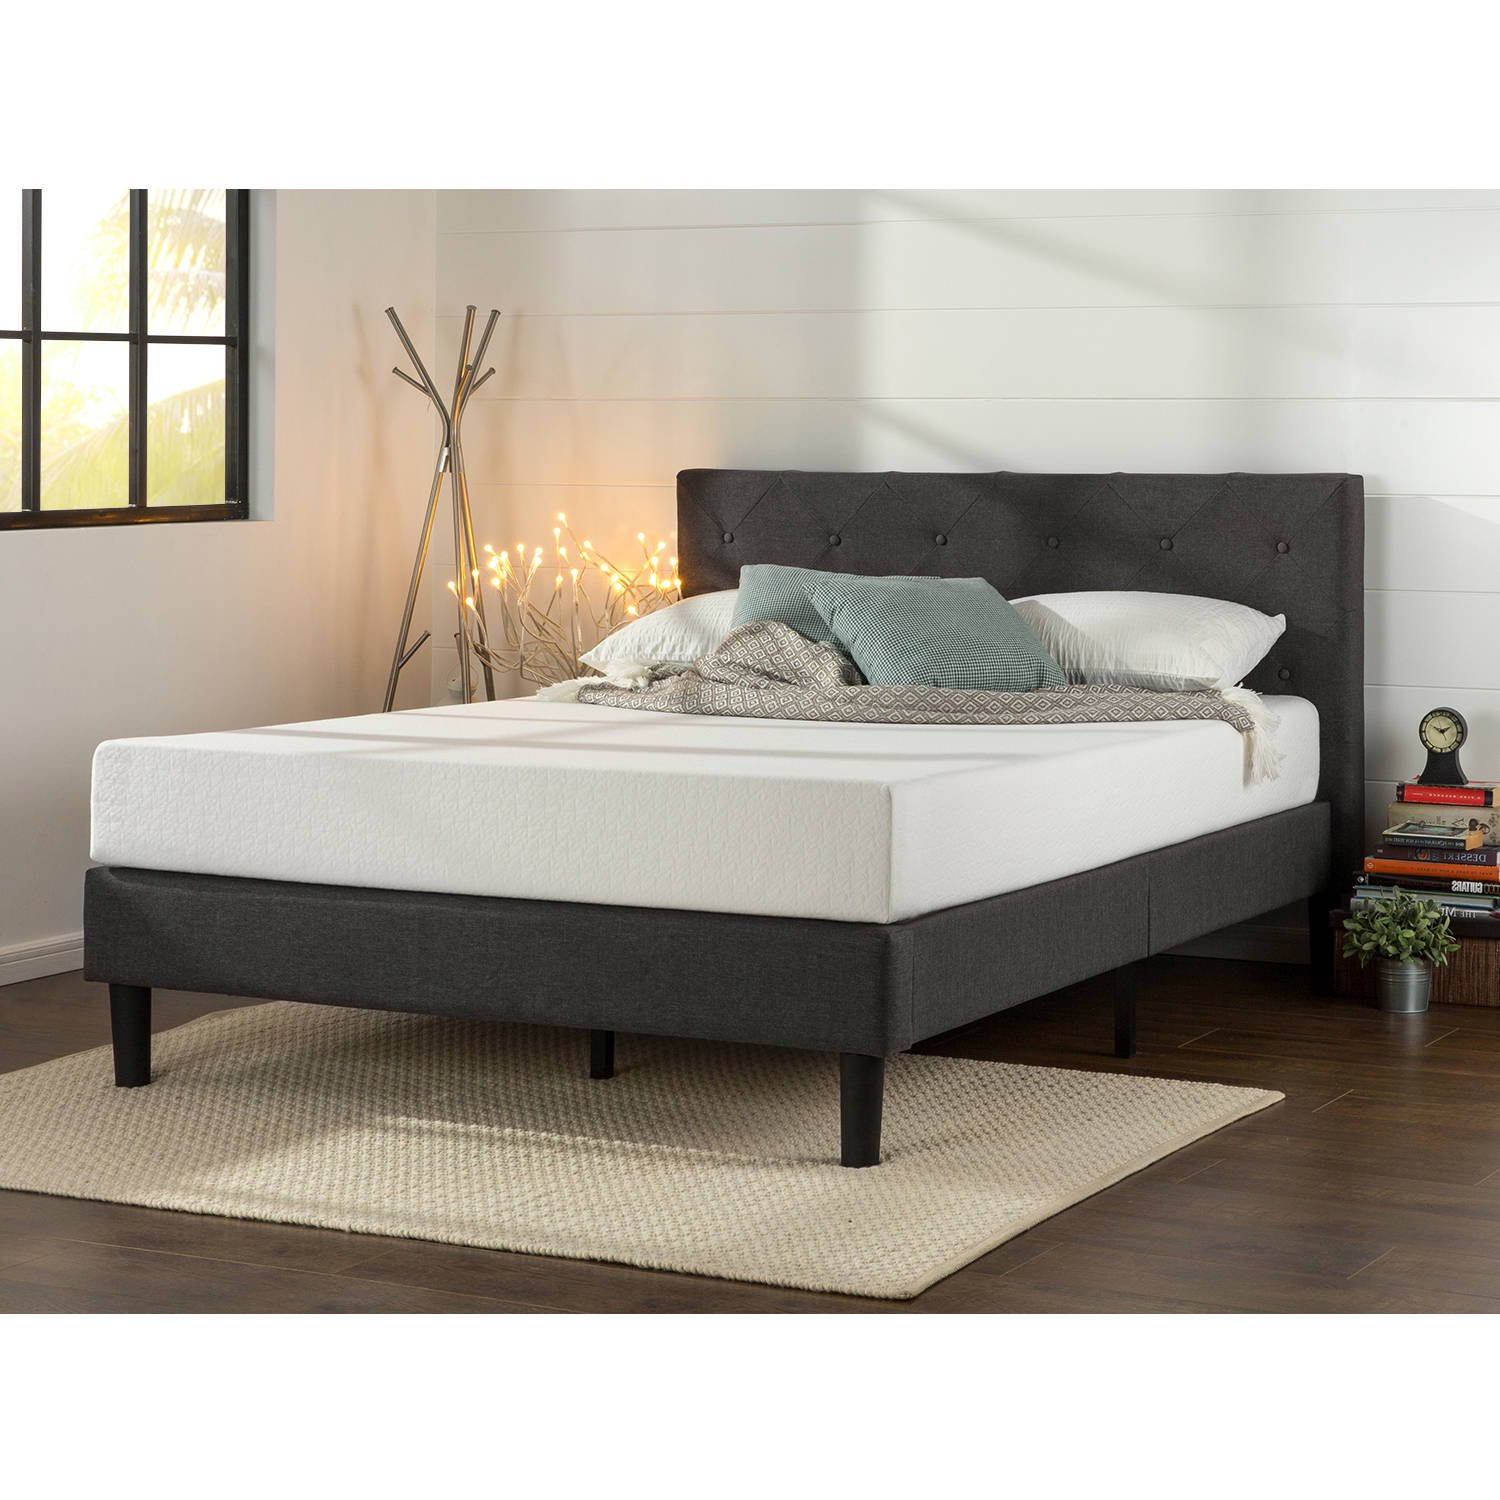 Innovative Walmart Bed Frames Ideas